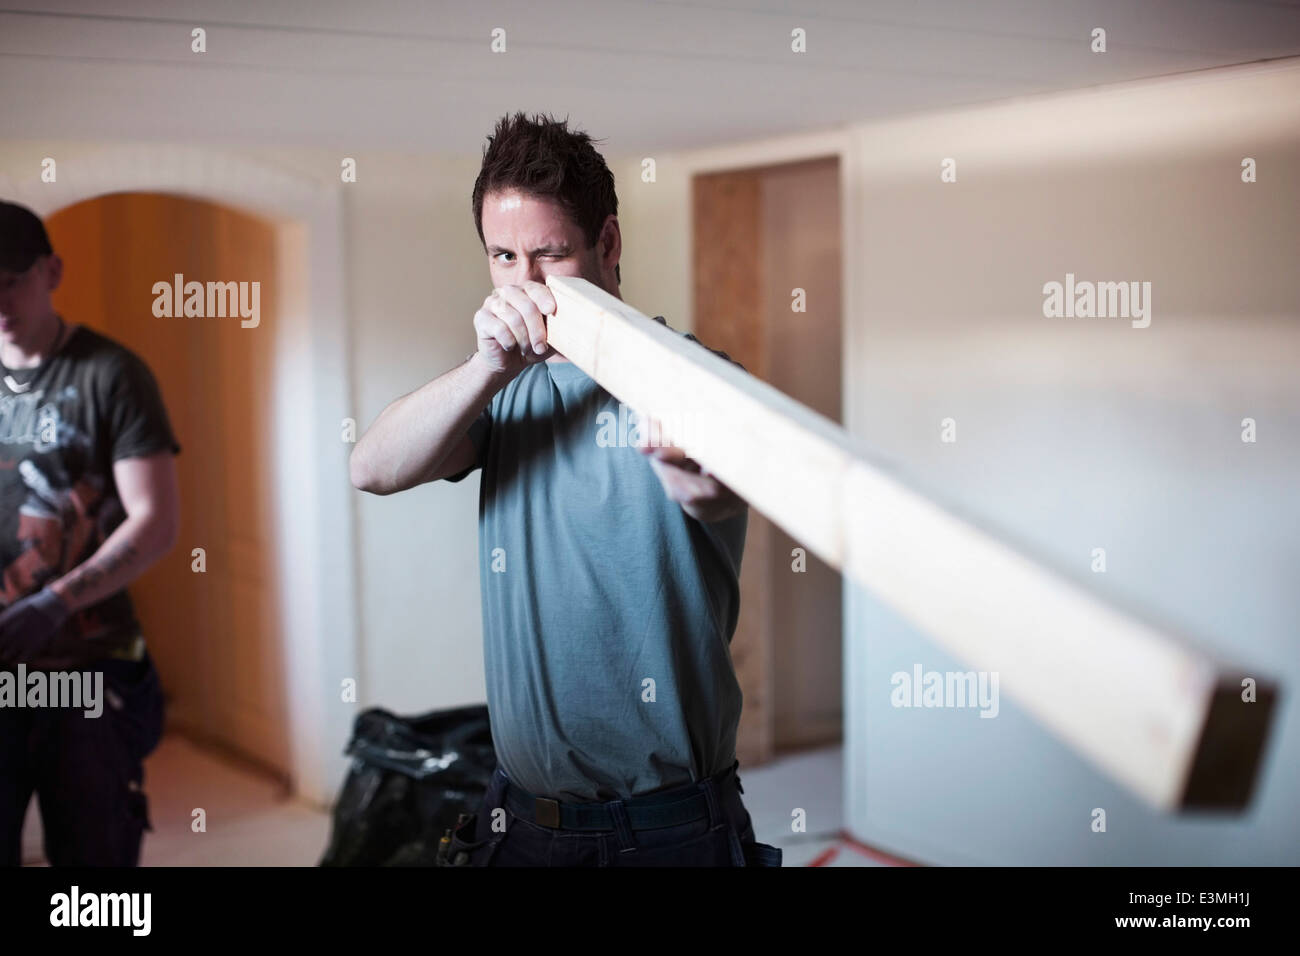 Male carpenter examining wooden plank at site - Stock Image